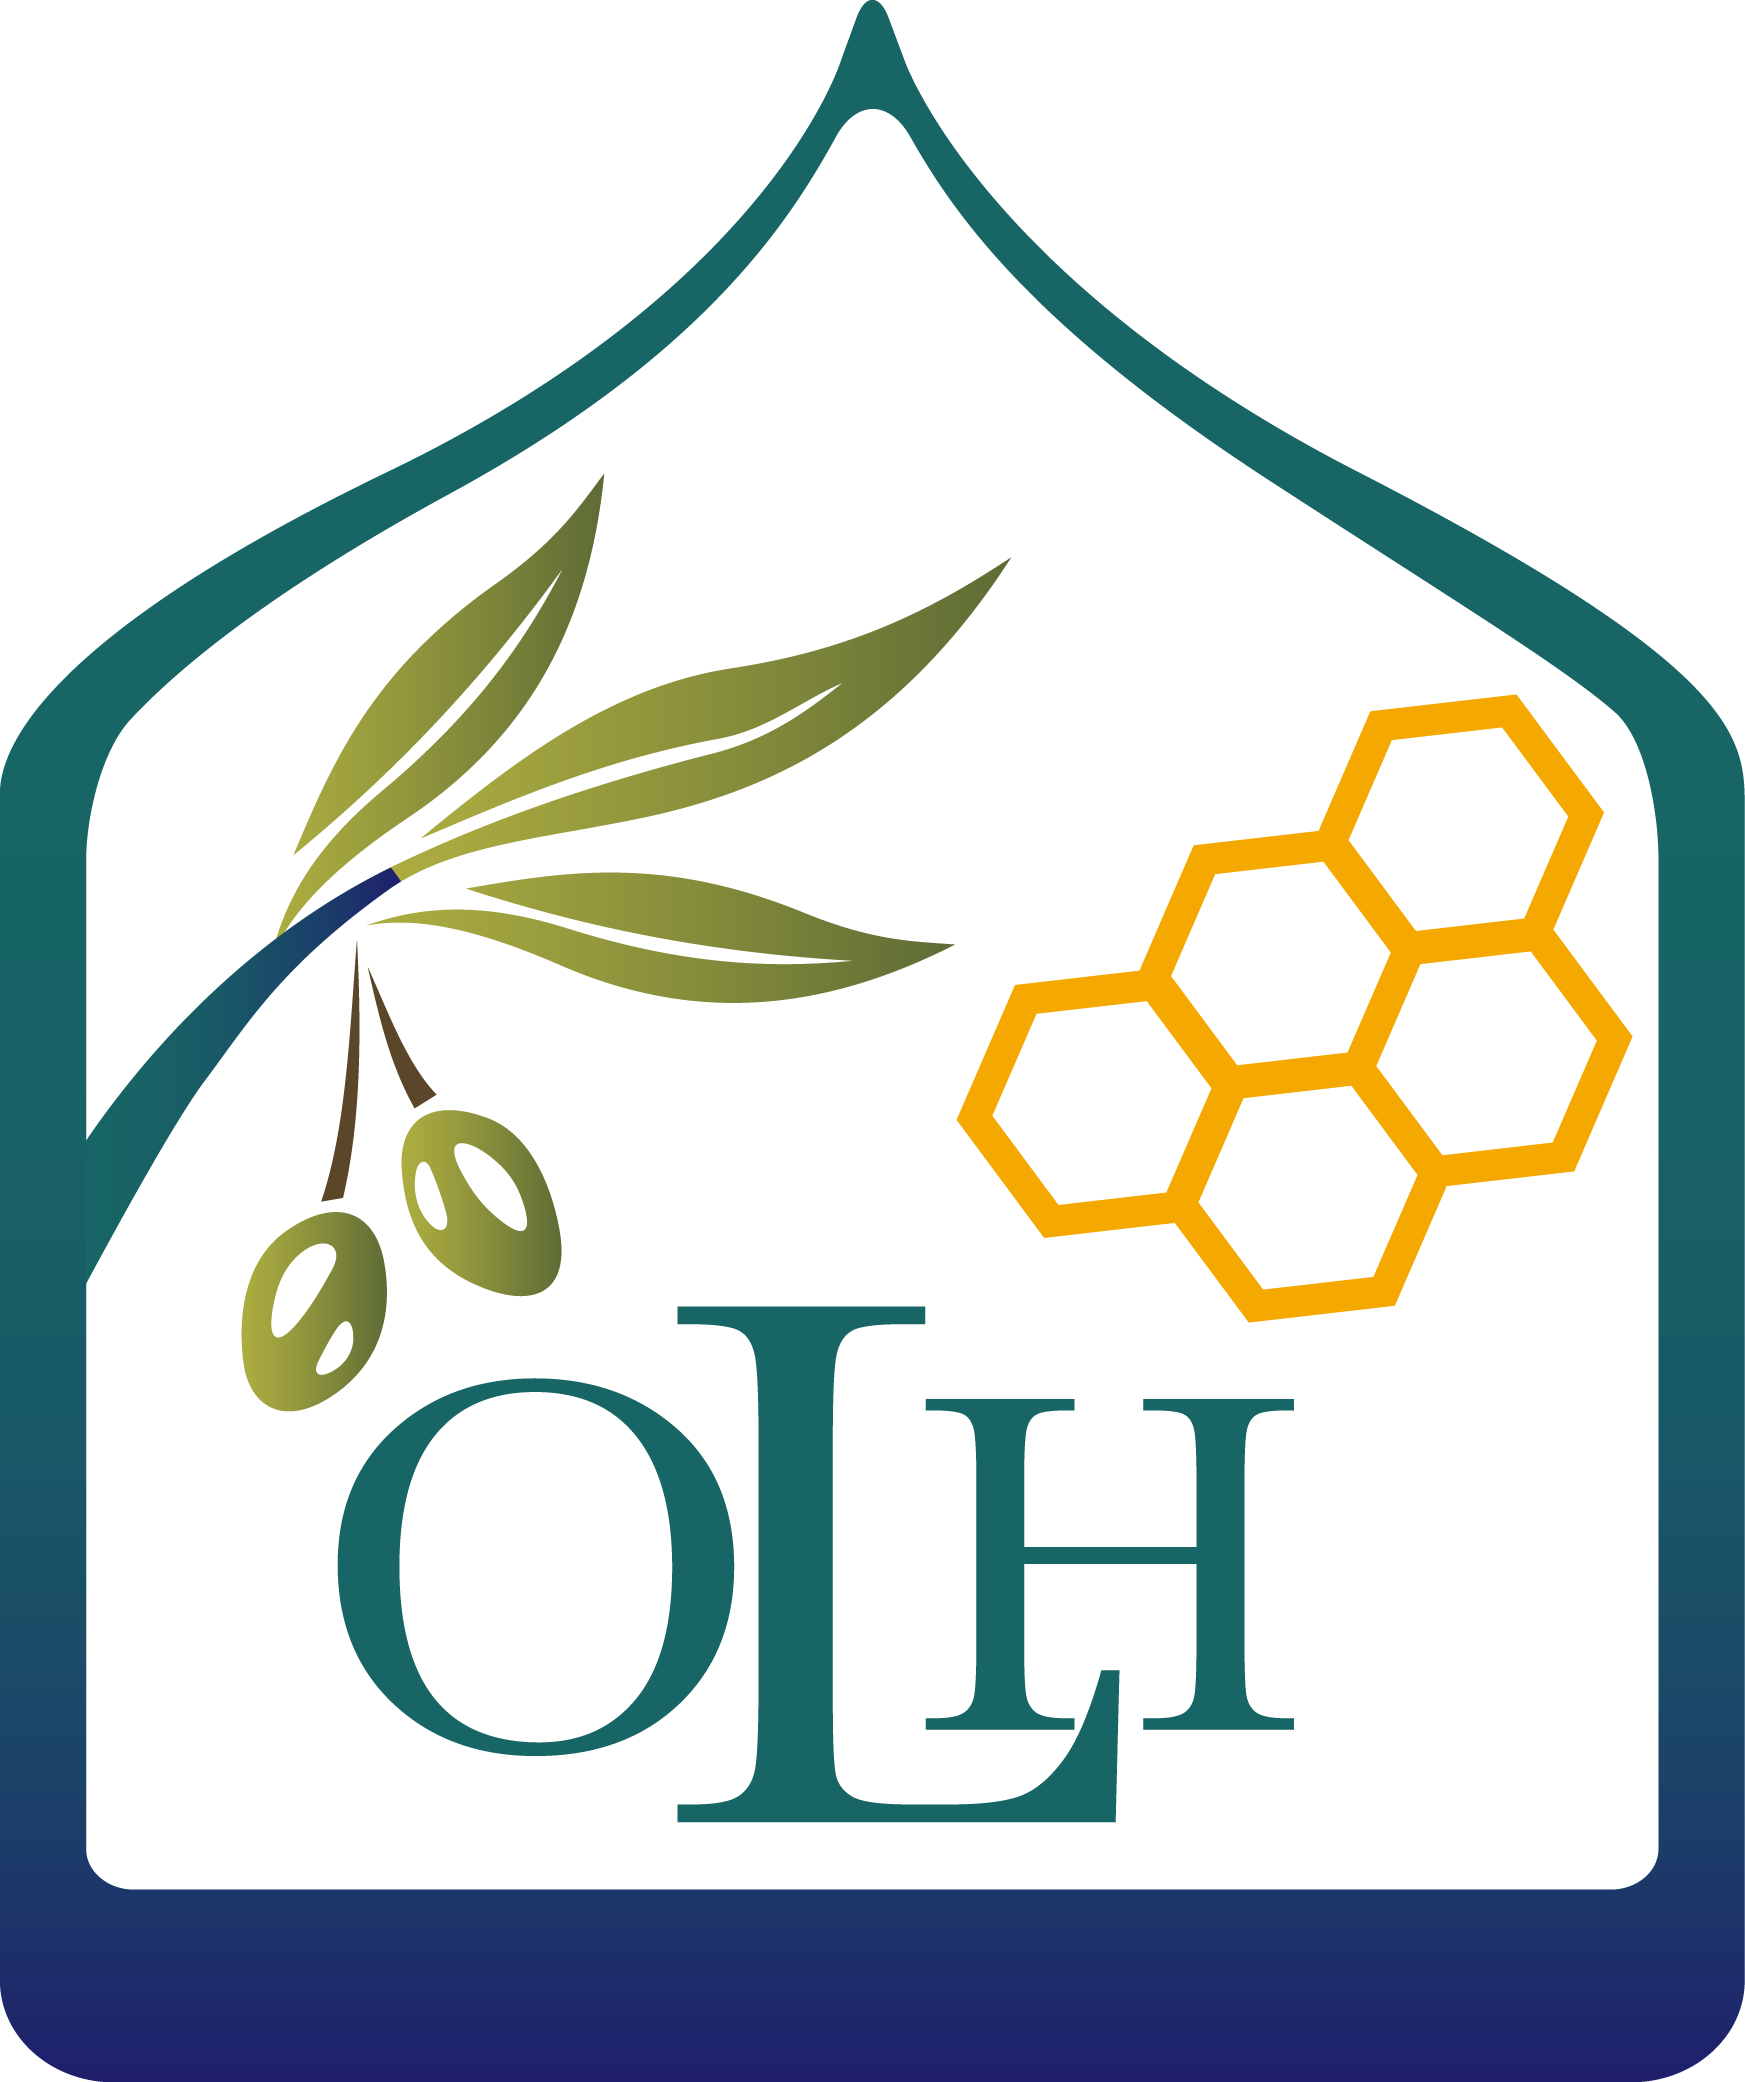 Oil clipart attar. Olive leaf honey love